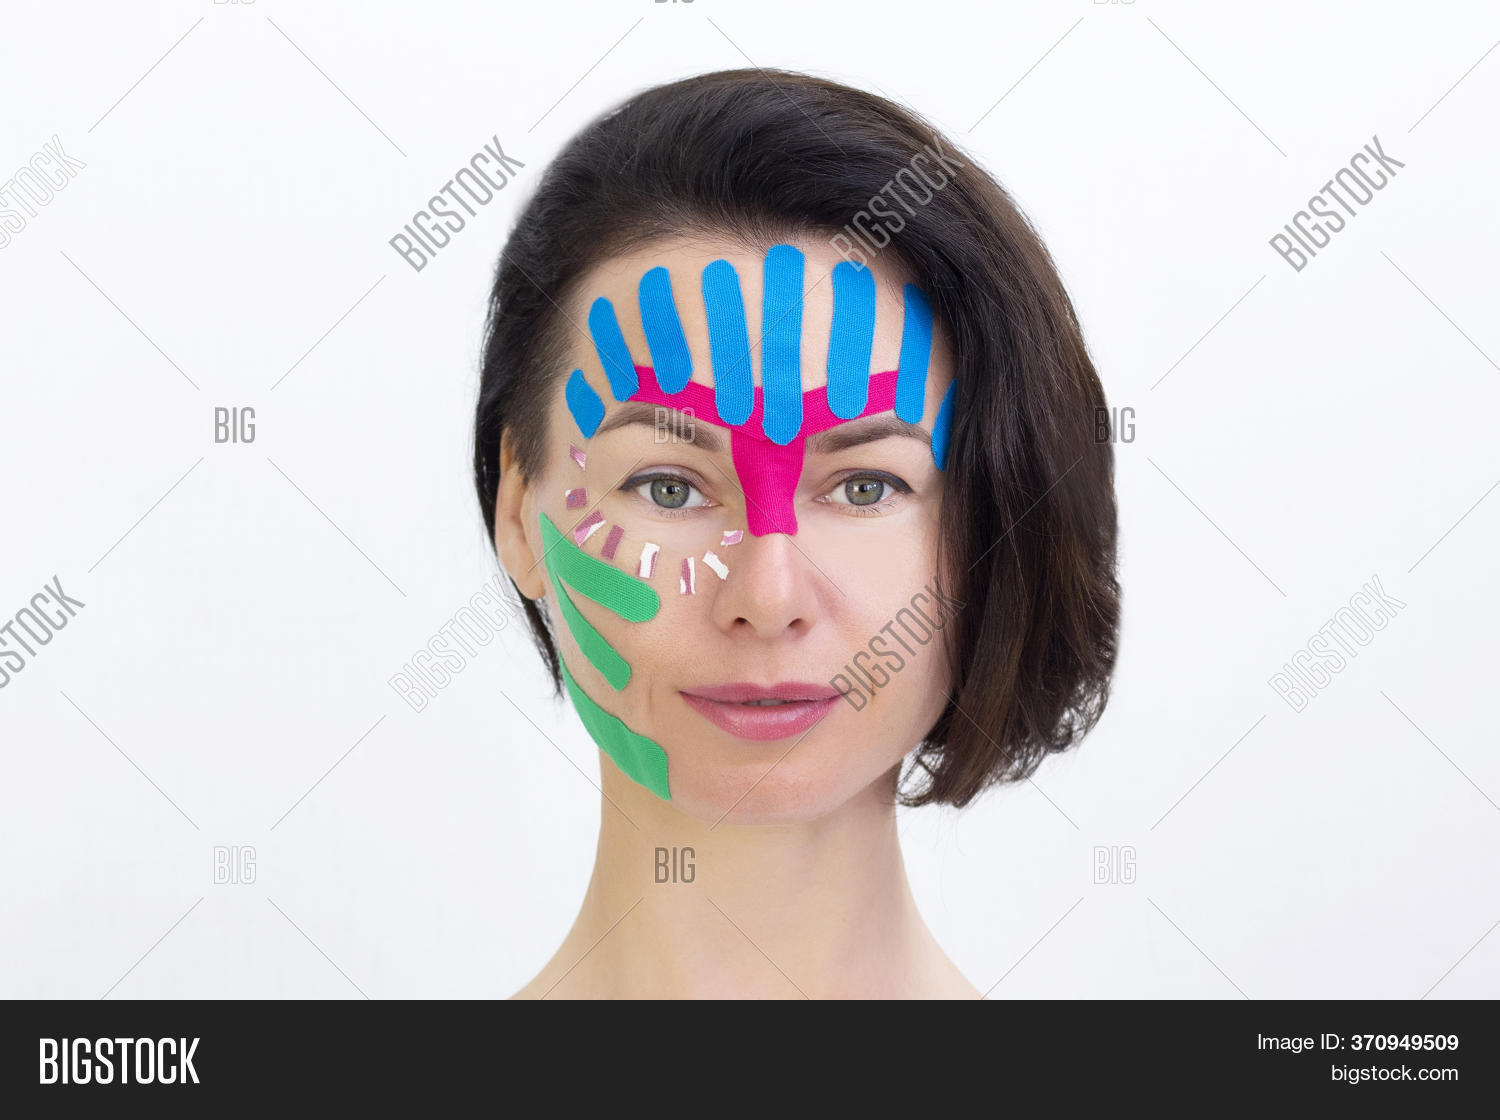 Face Taping Close Image Photo Free Trial Bigstock